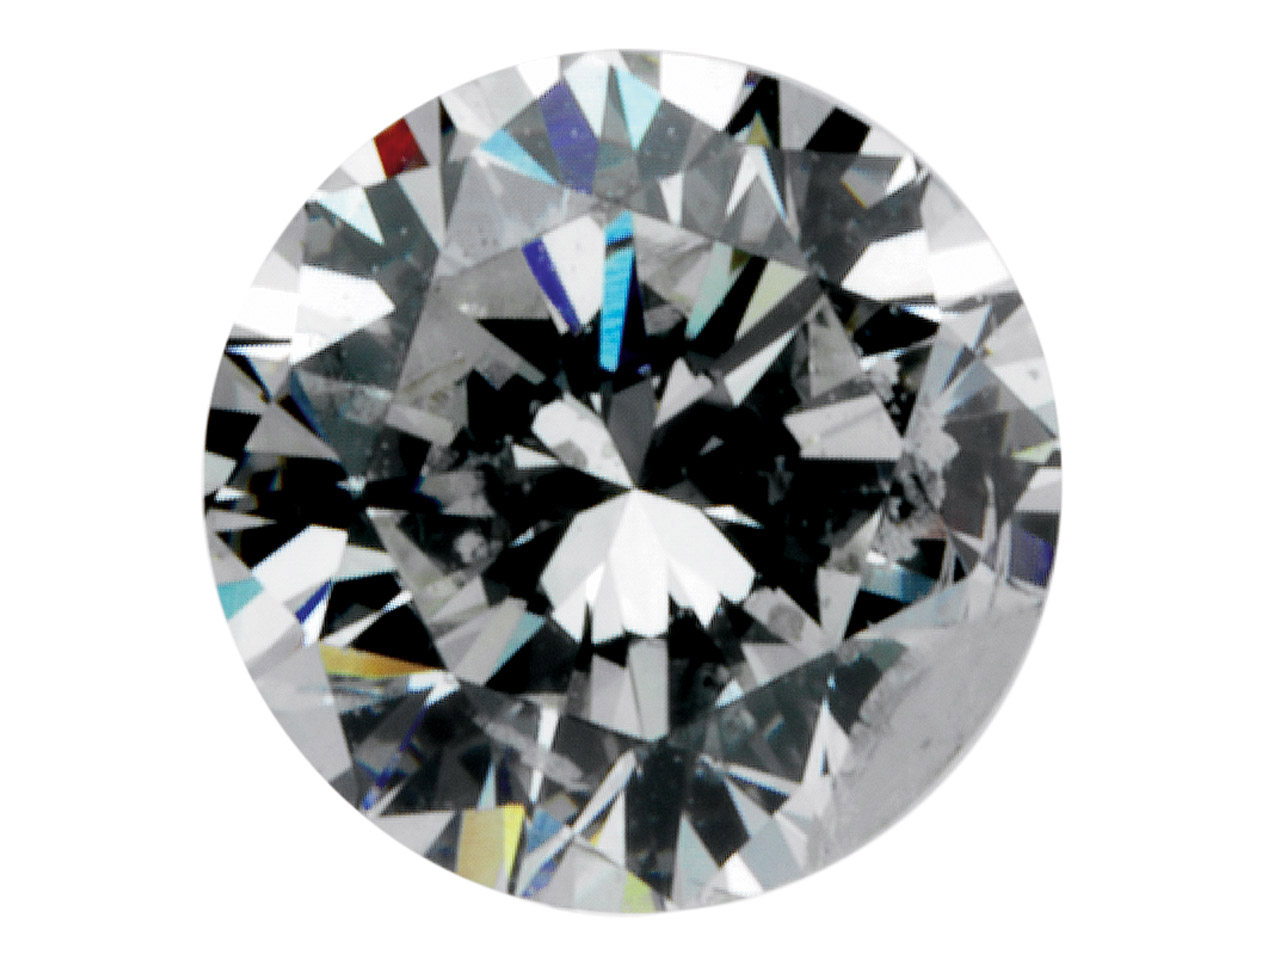 Diamond, Round, H/si, 1.5pt/1.5mm